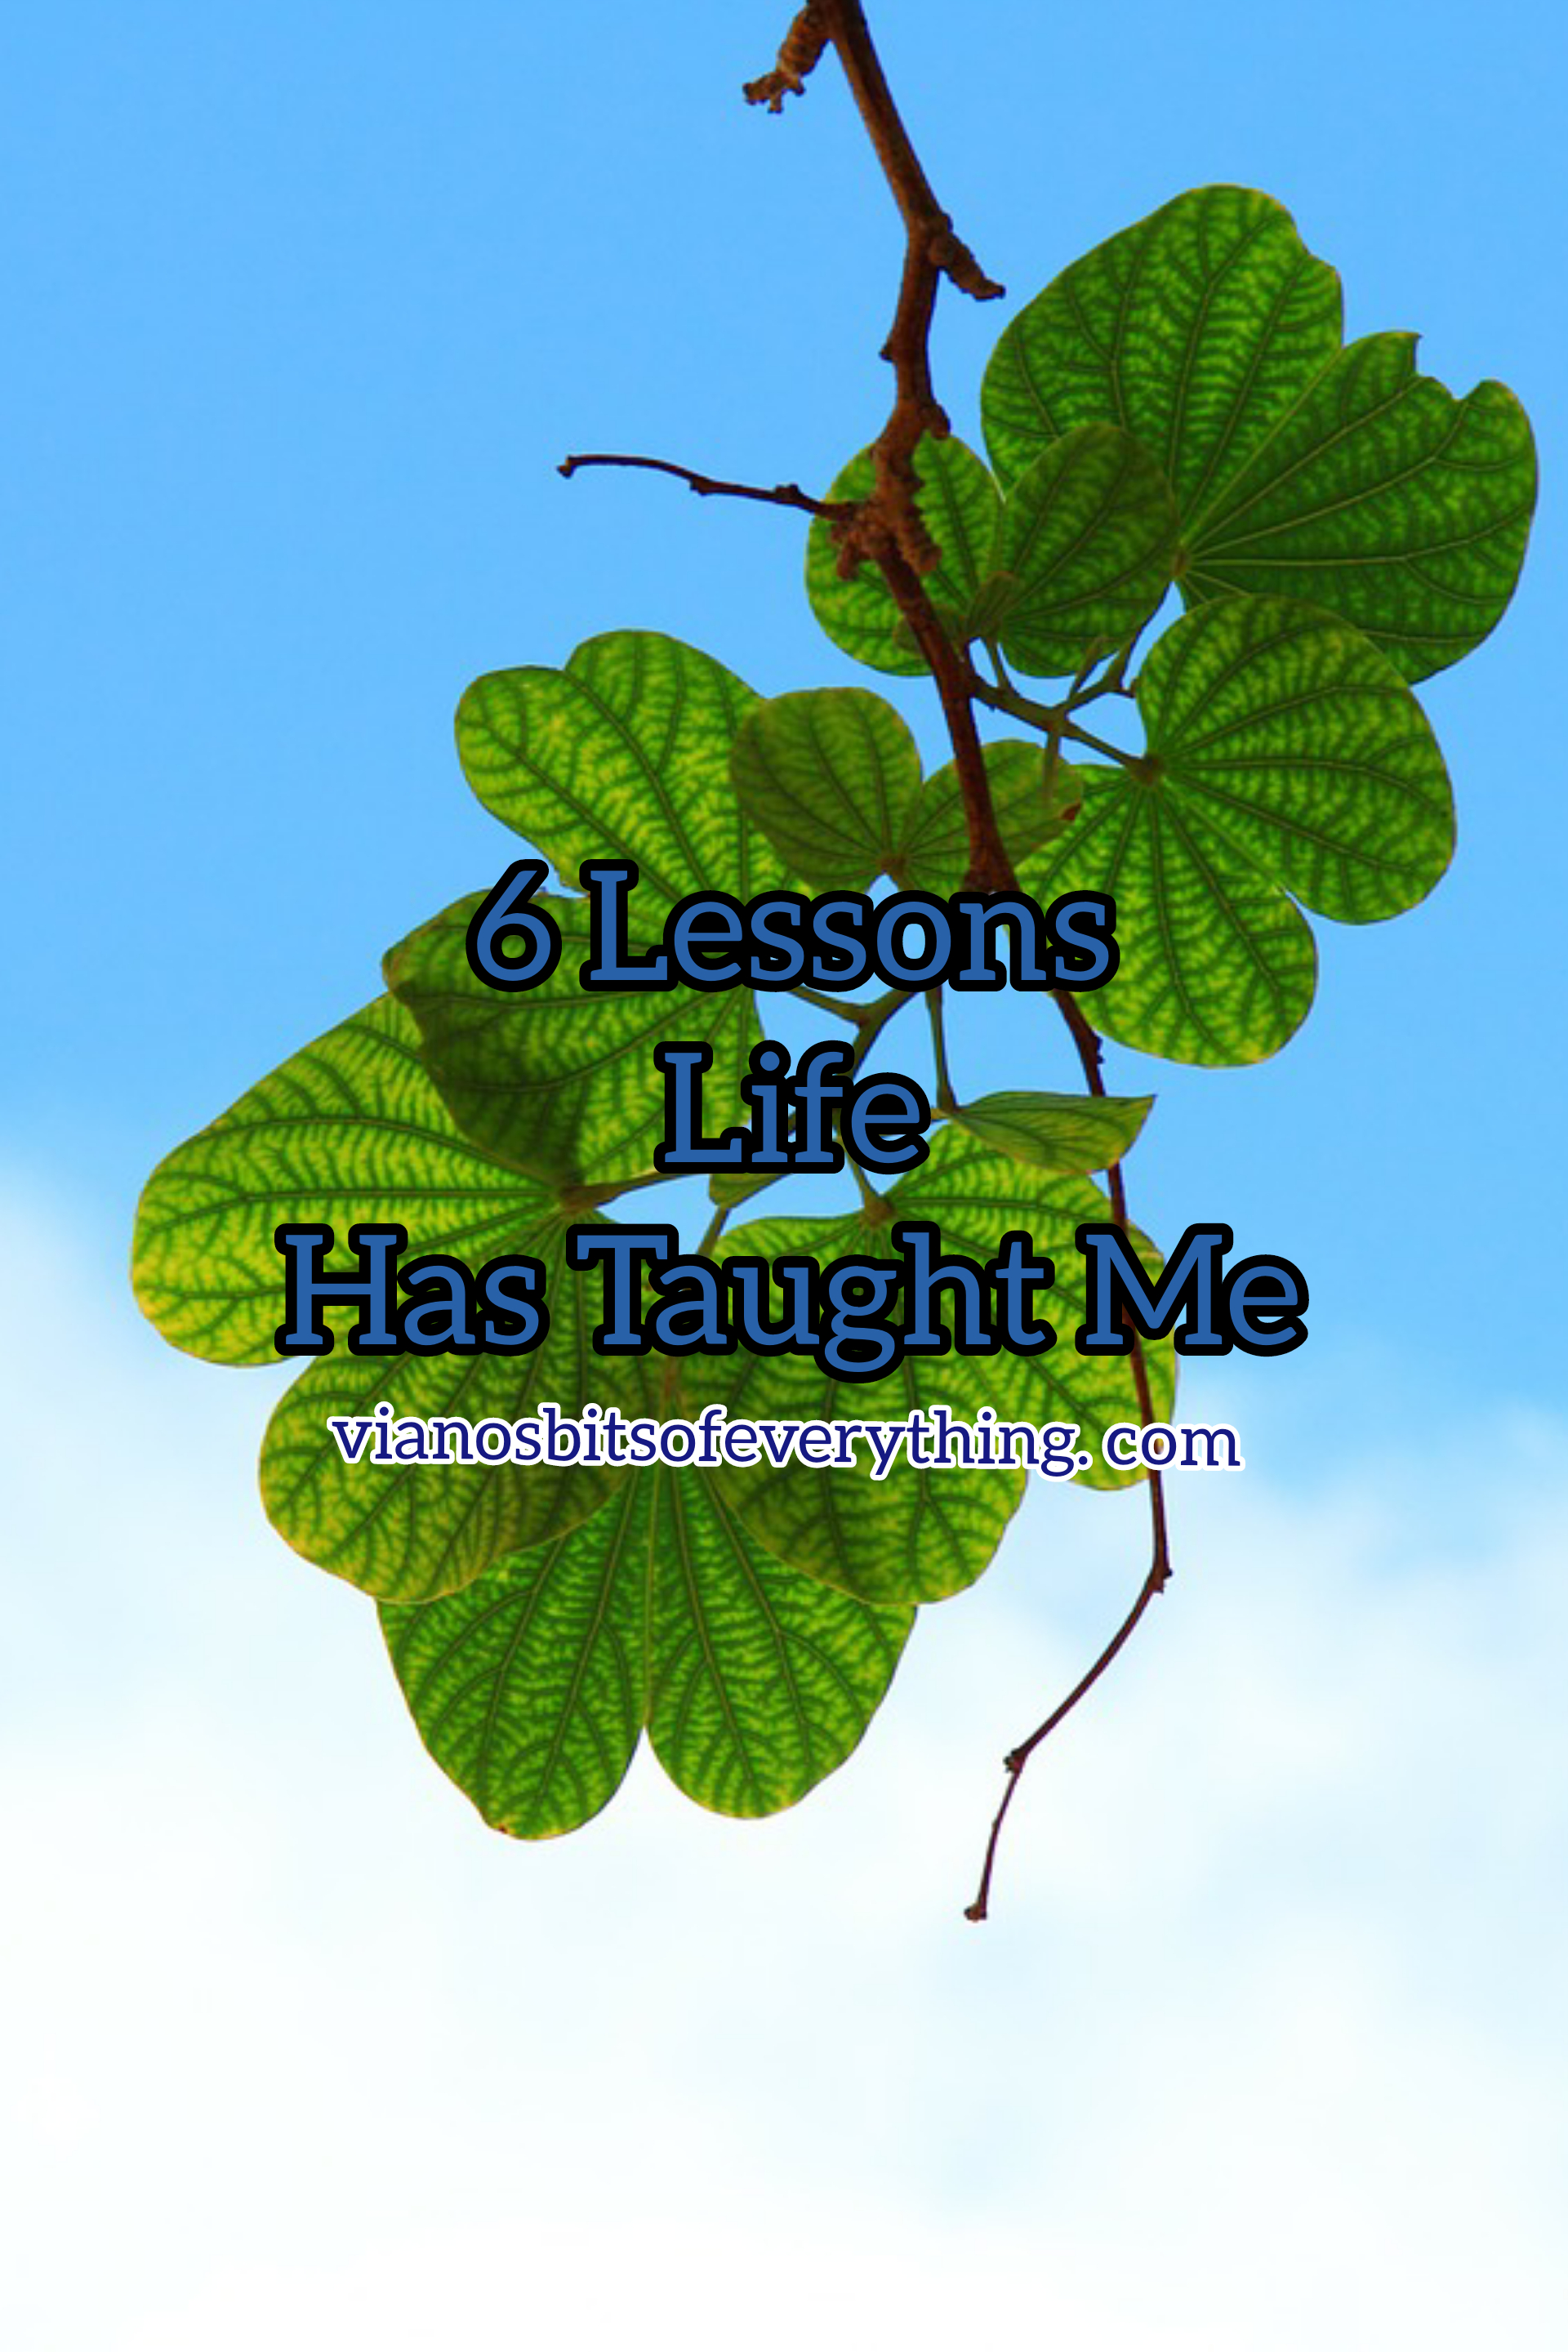 6 Lessons Life Has Taught Me